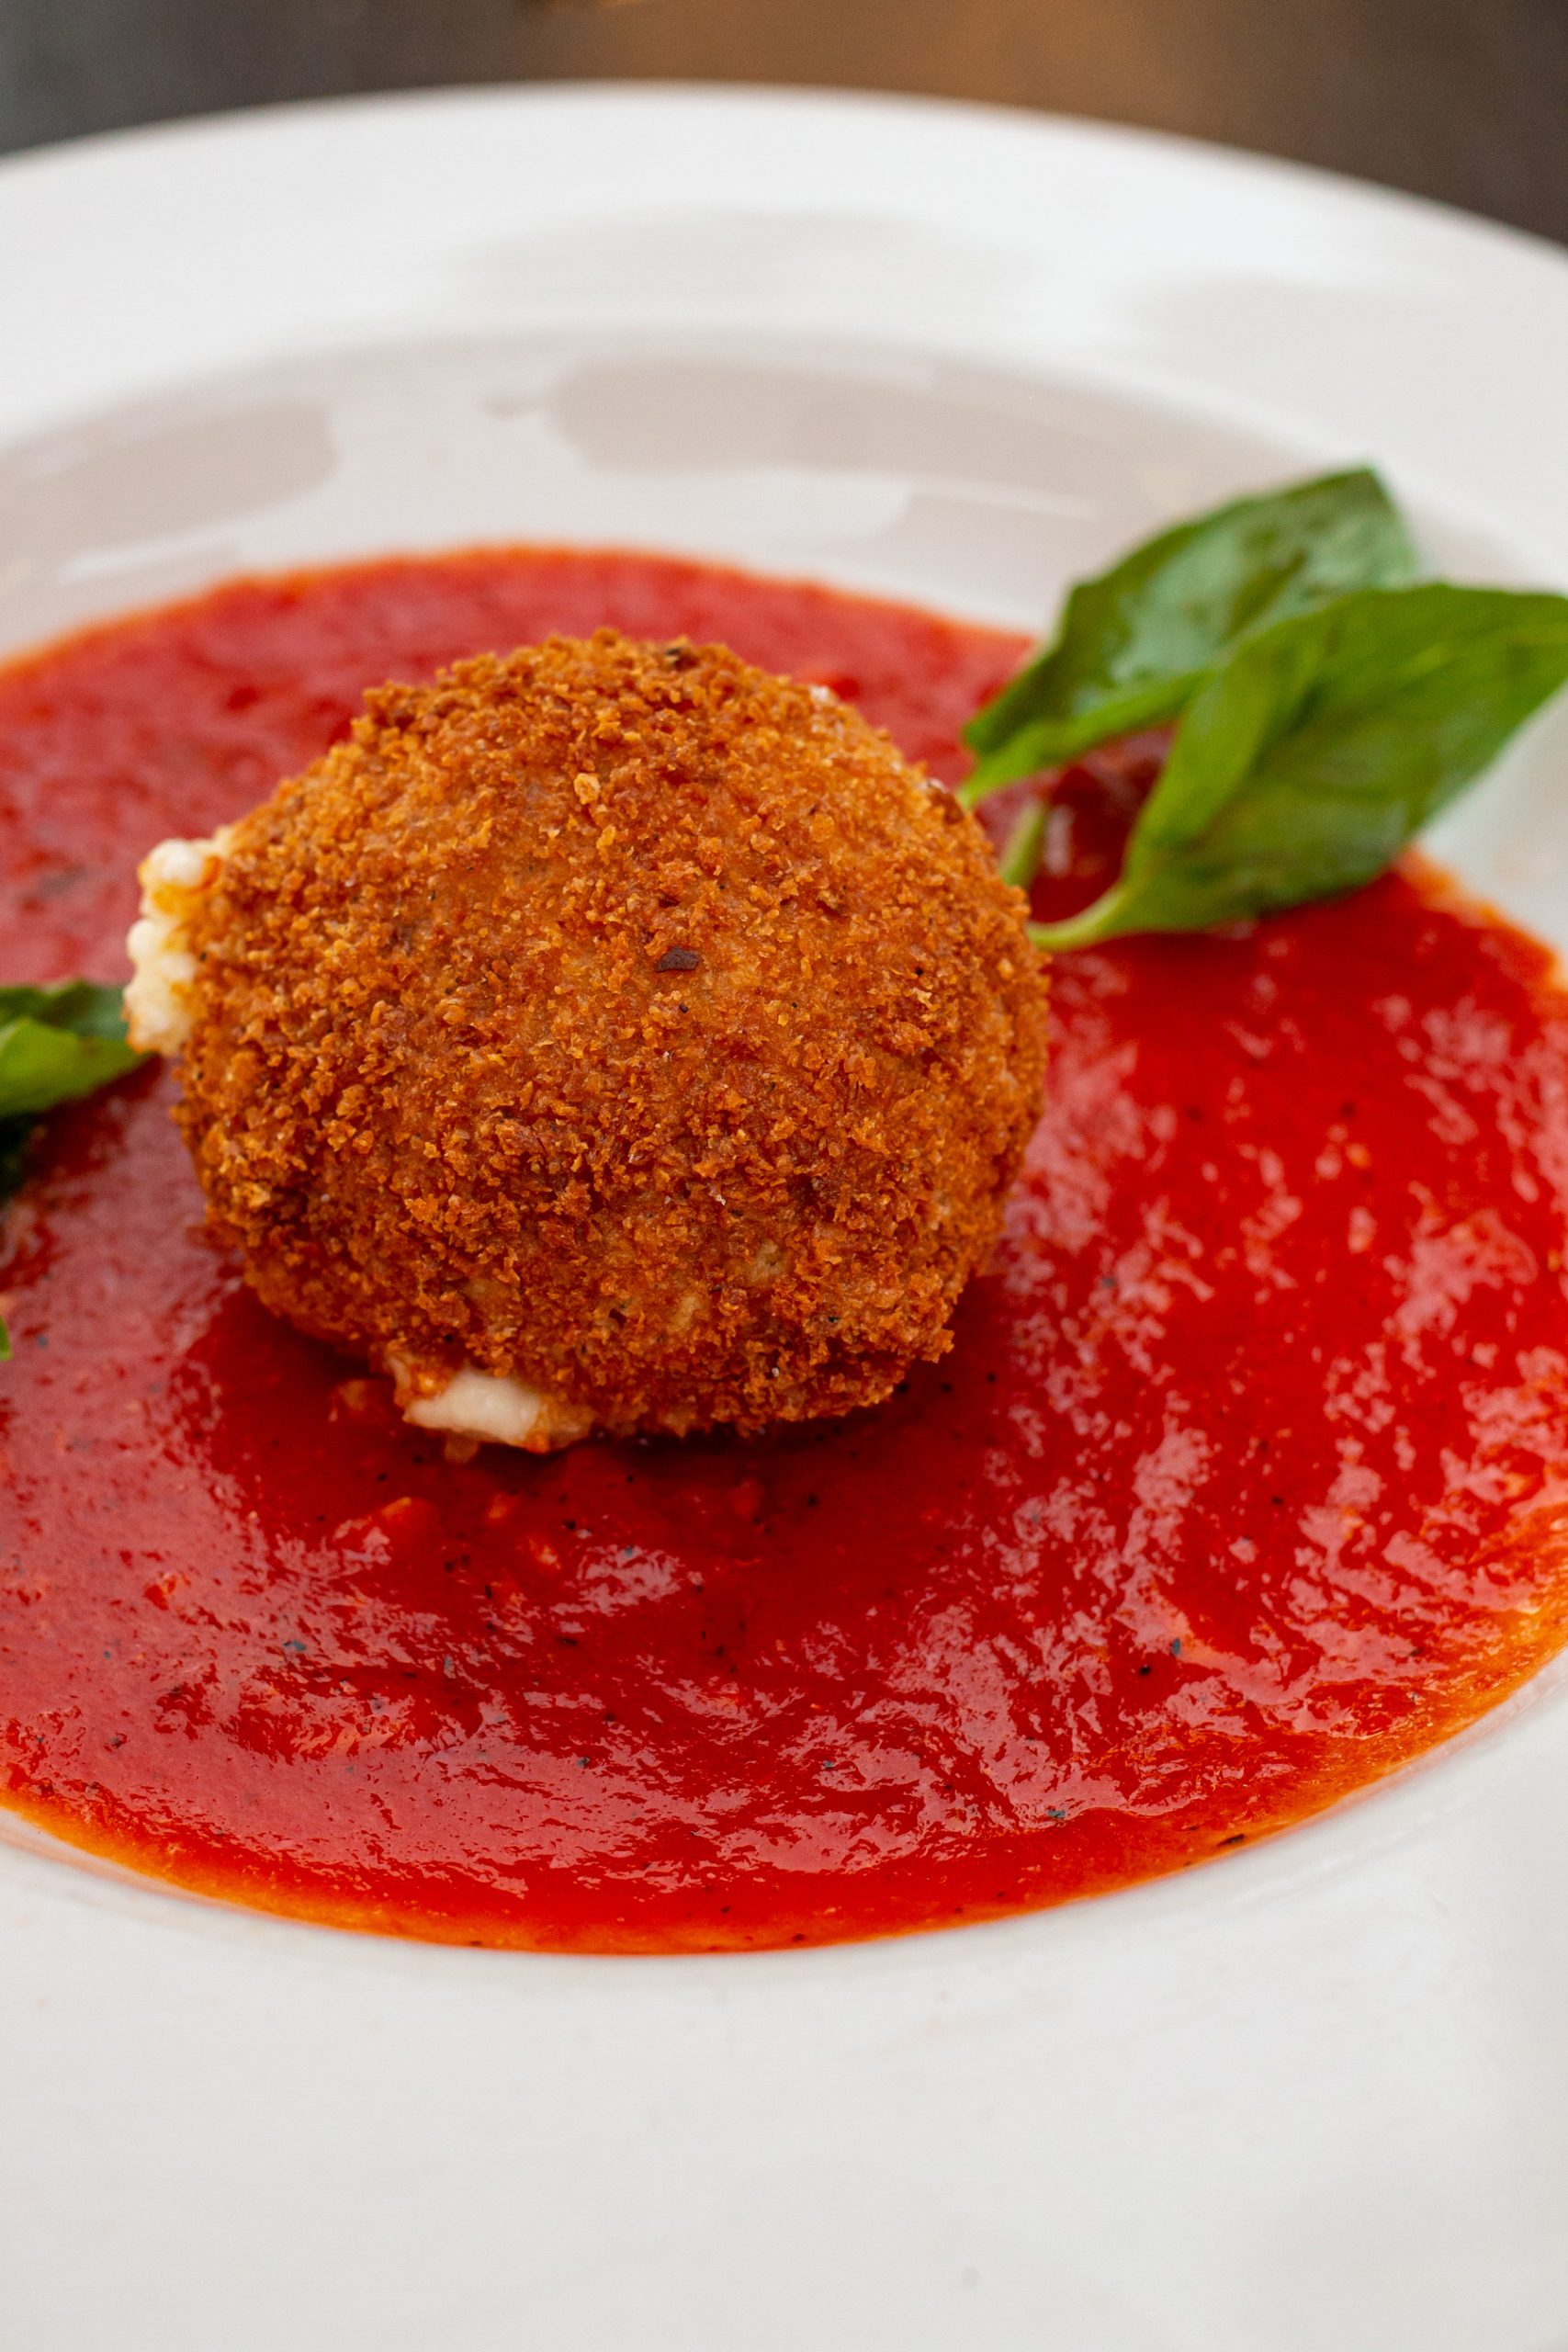 Fried Burrata Cheese in a shallow bowl of marinara sauce.